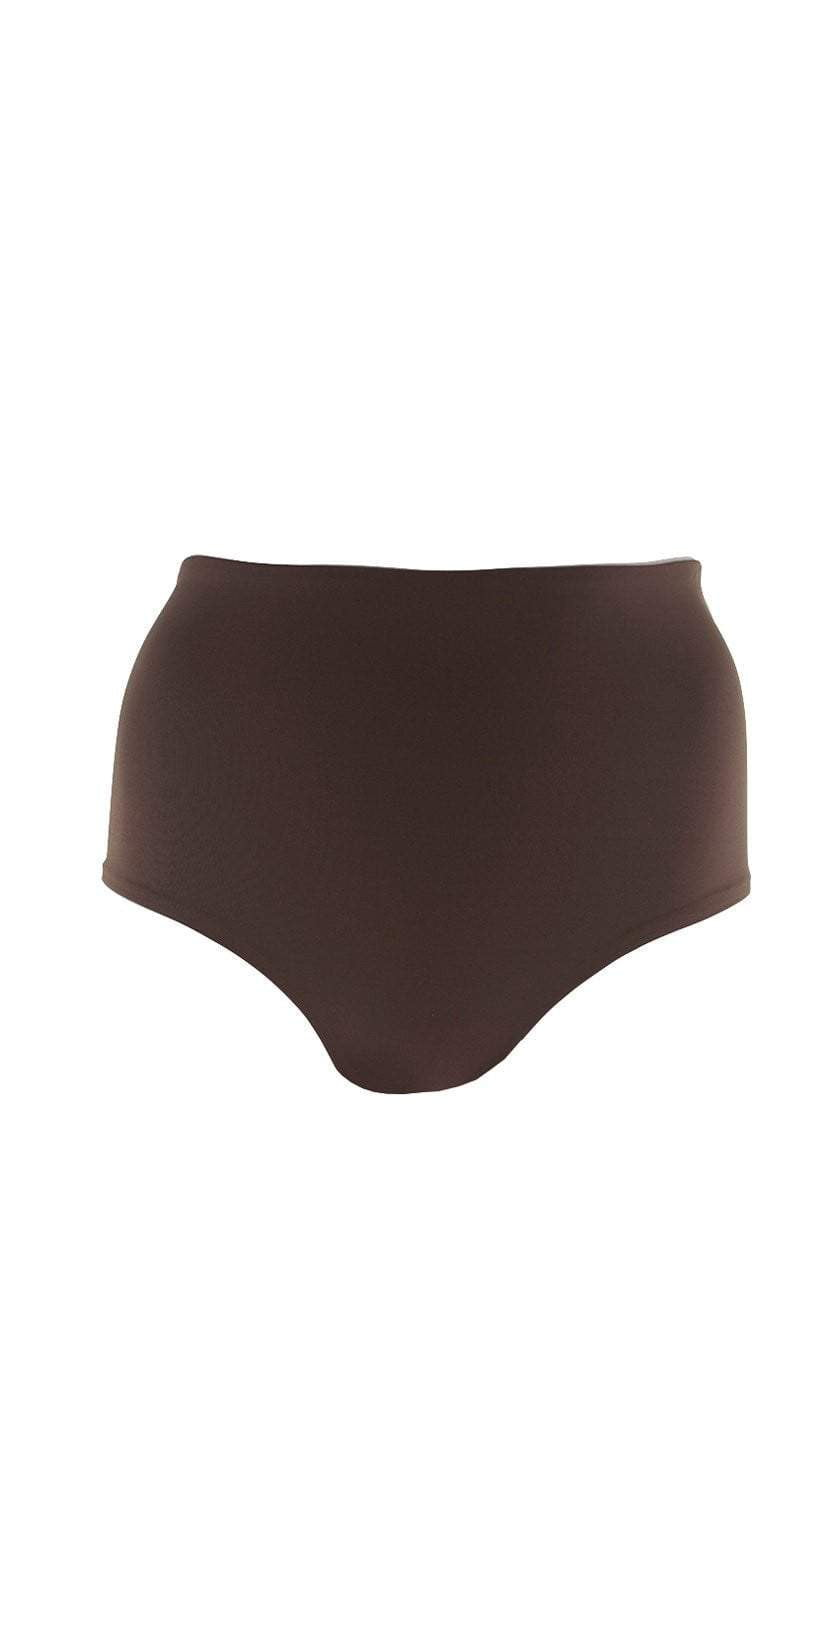 L Space Portia Bottom in Chocolate TSPOC18-CHO floating studio